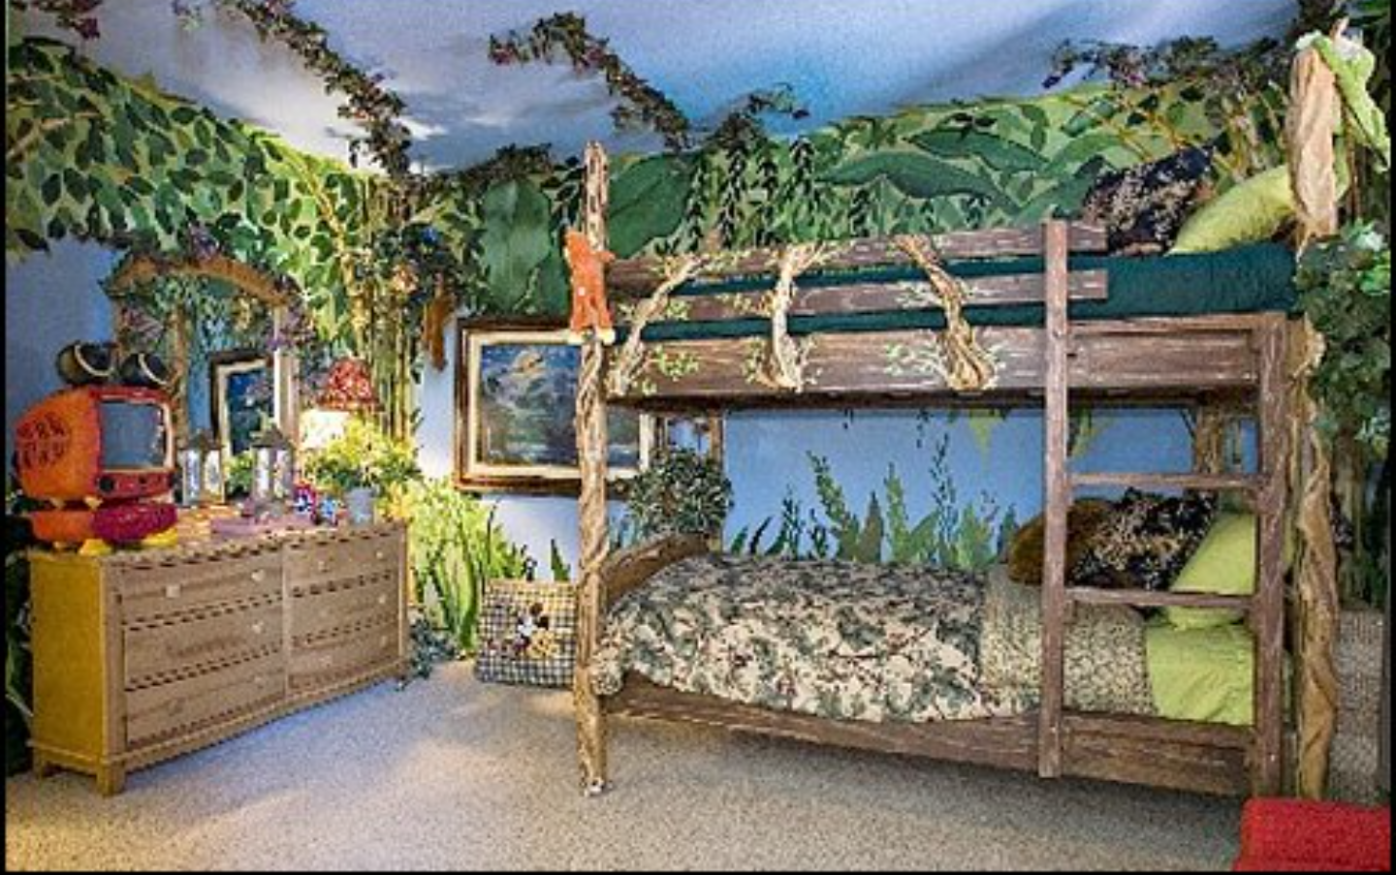 Camo jungle/forest/woods themed bedroom for boys!  Jungle bedroom  - Childrens Bedroom Ideas Jungle